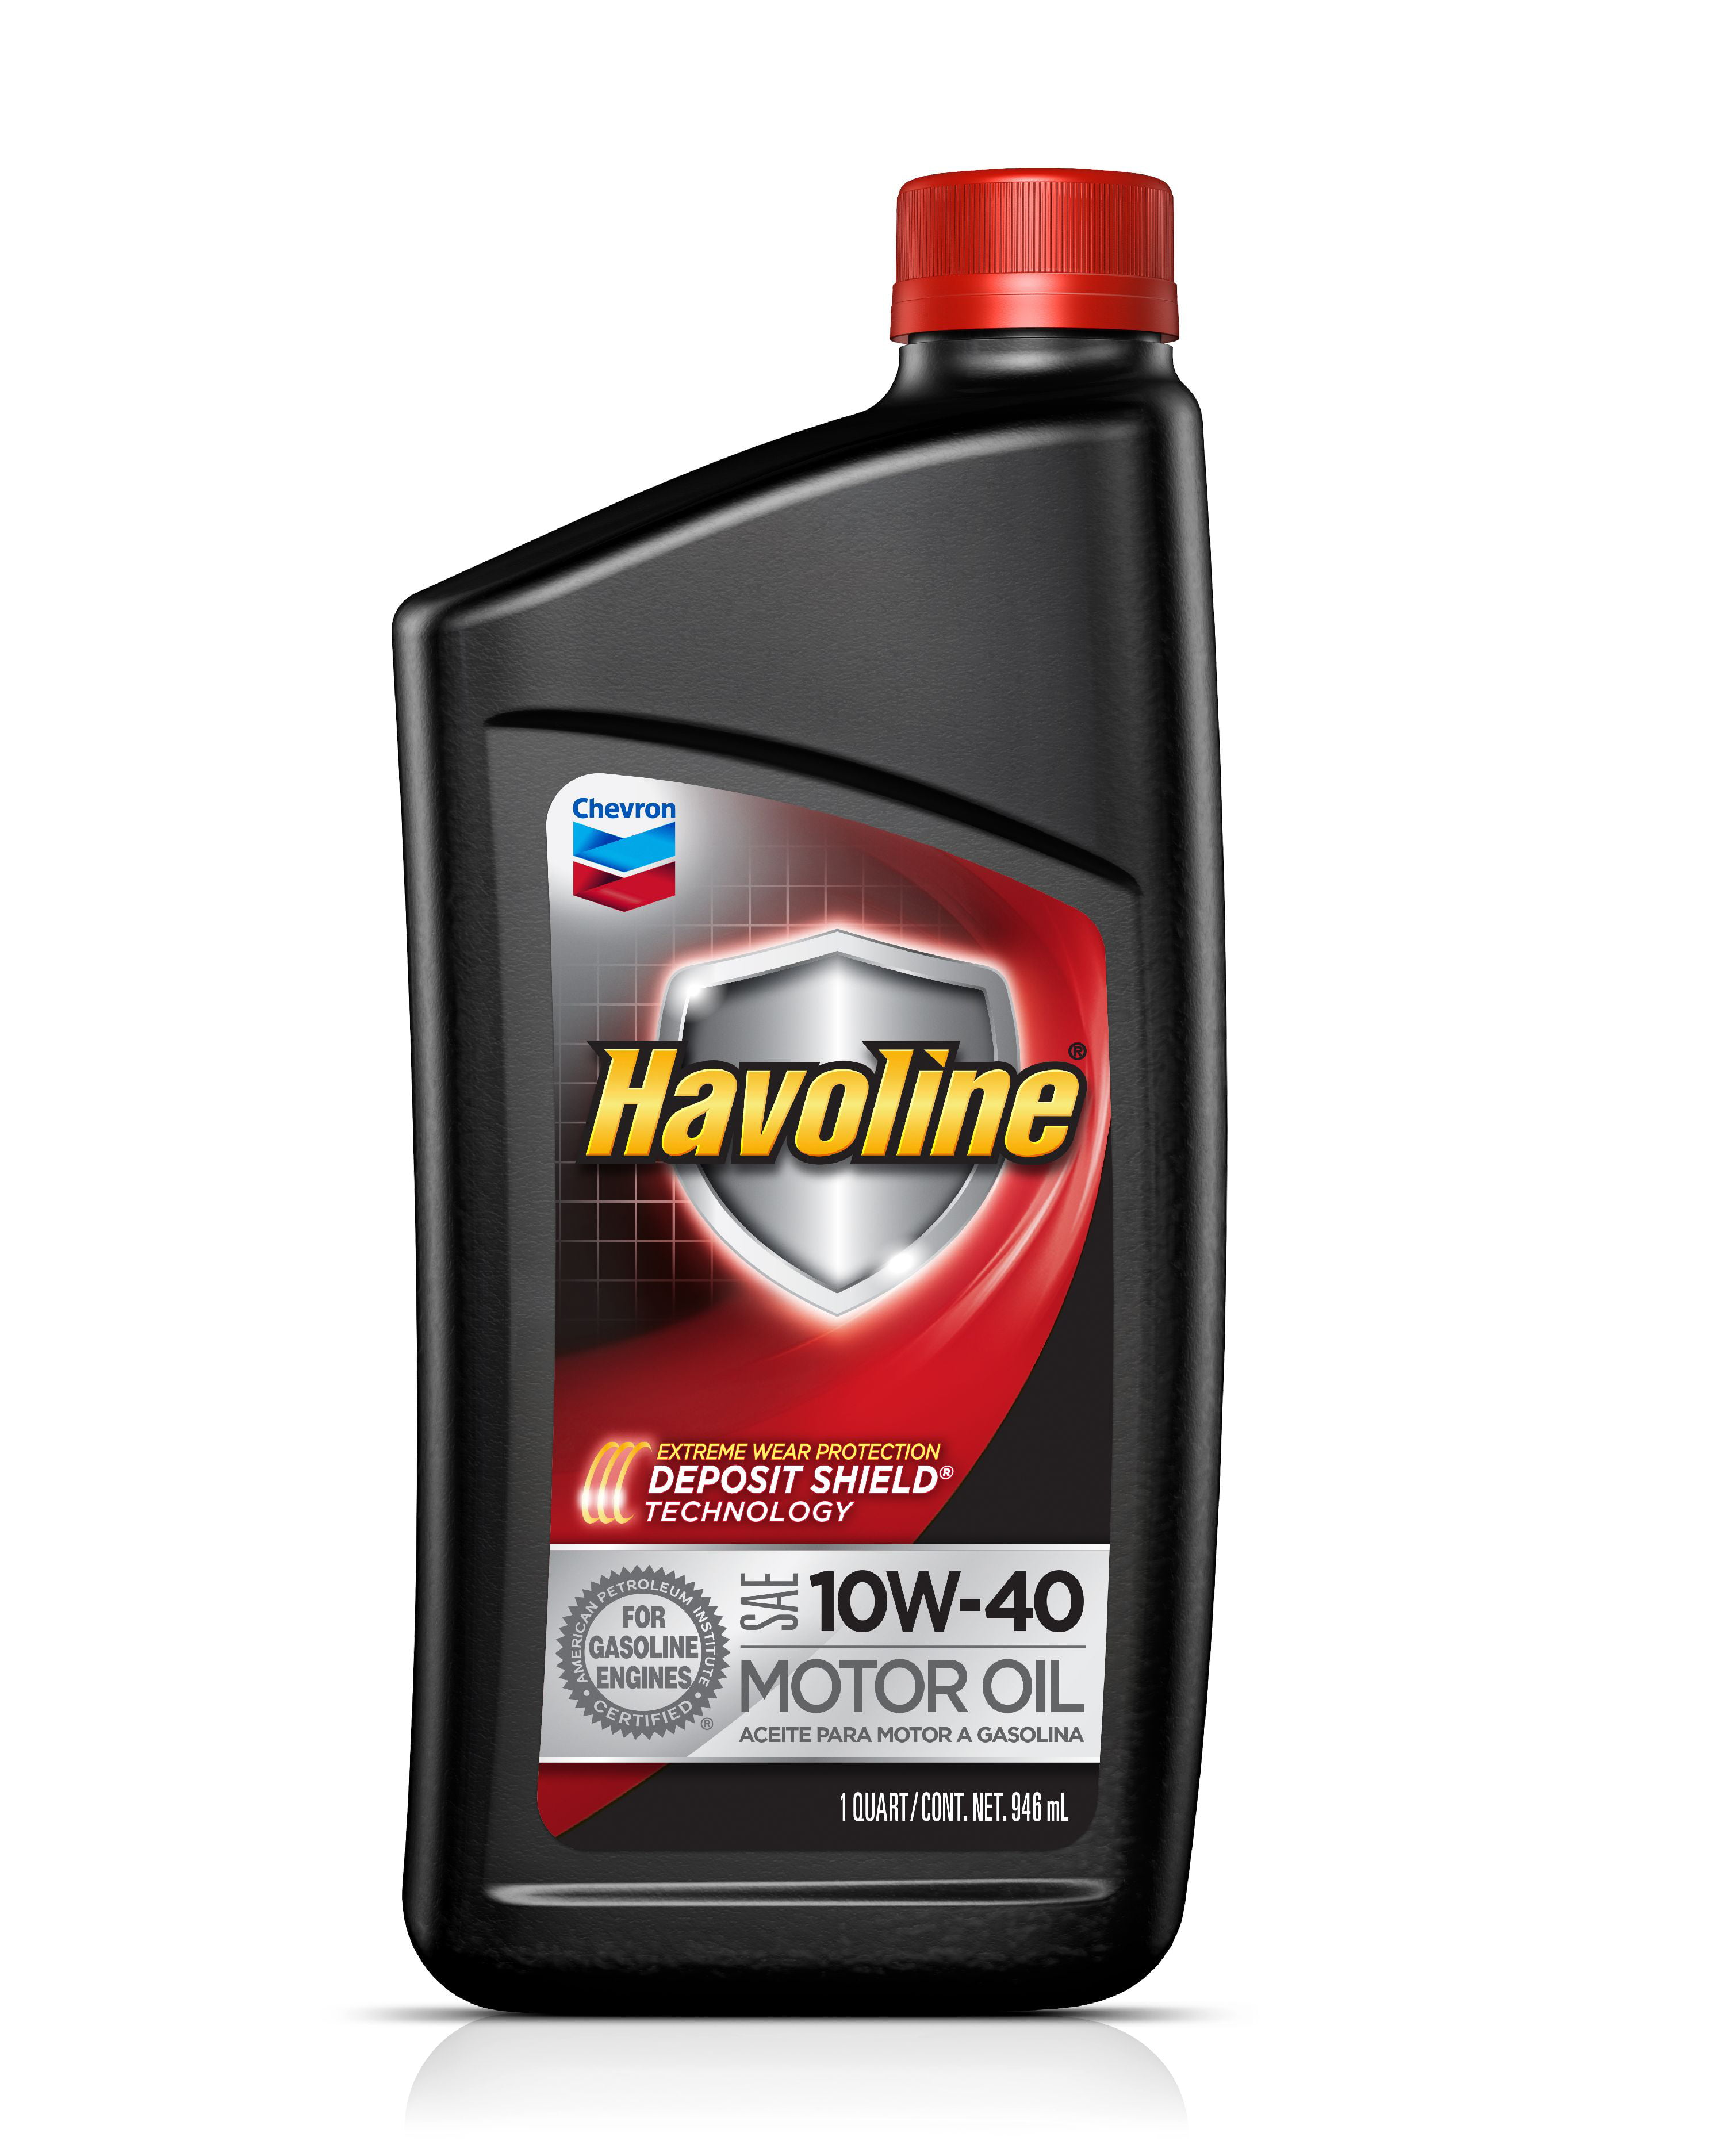 Havoline with Deposit Shield 10W-40 Conventional Motor Oil, 1 qt.